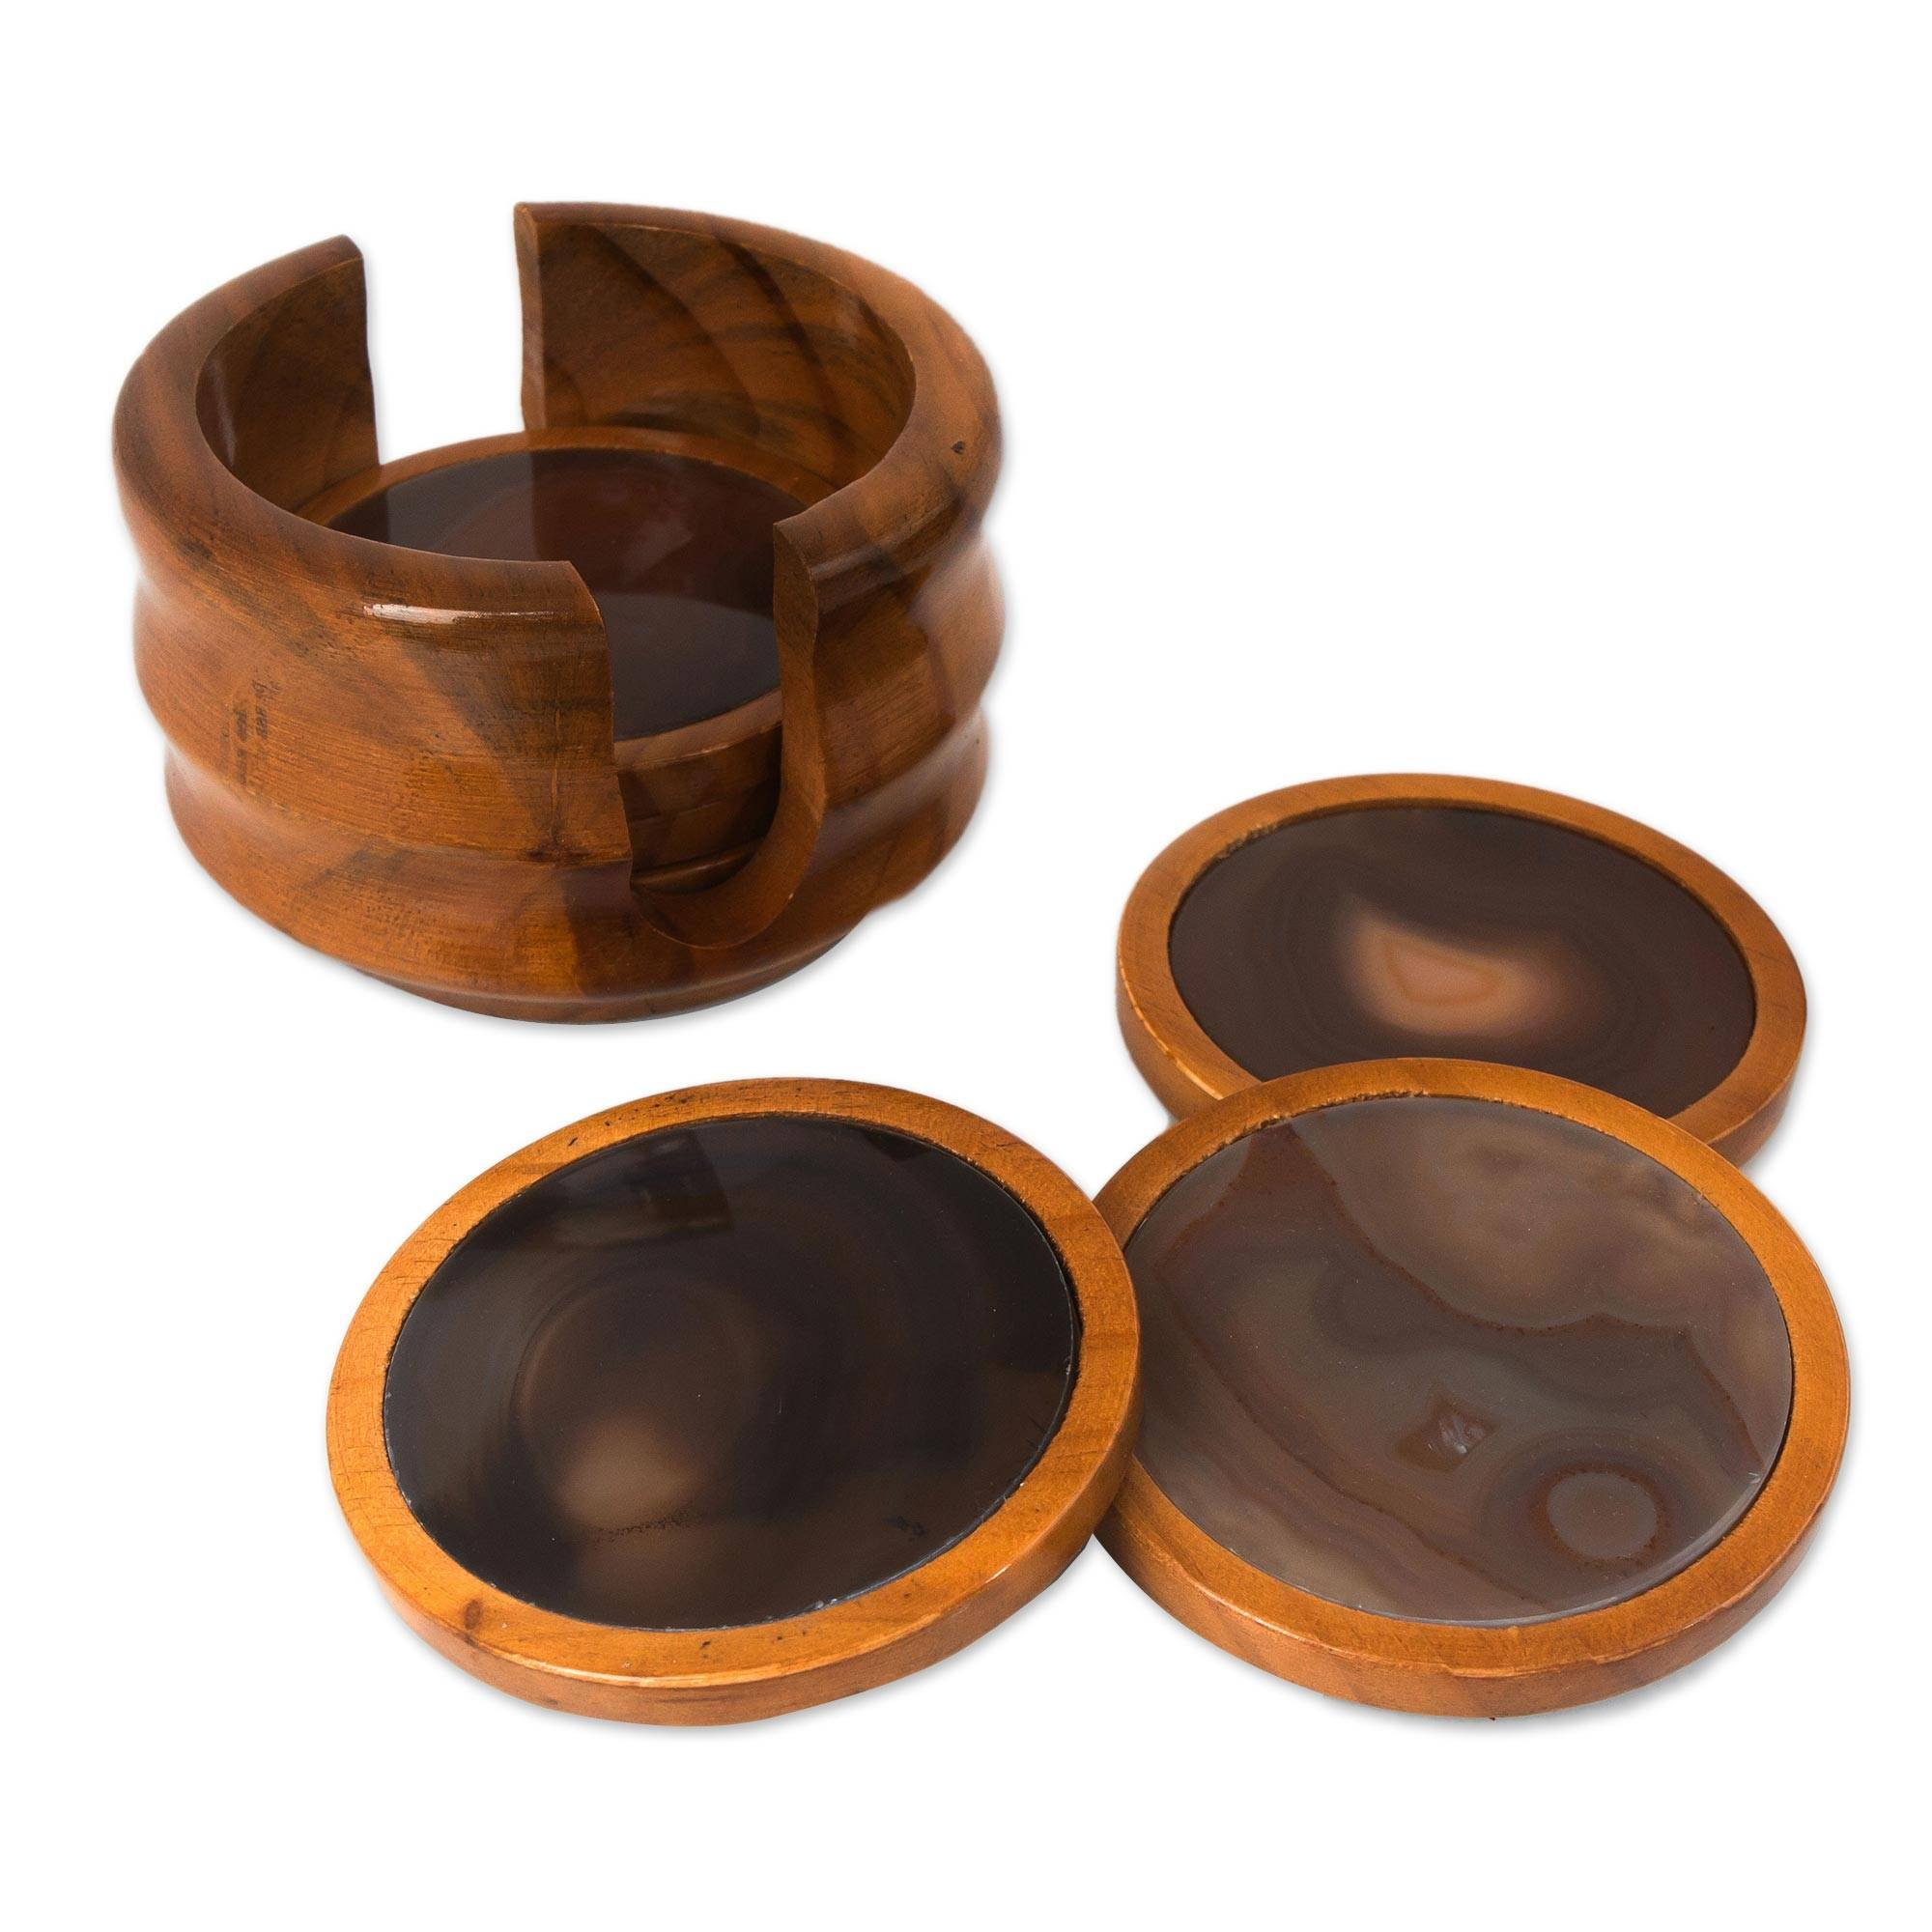 NOVICA Decorative Cedar Wood and Gray Agate Coasters, Brown, Burning Mist' (Set of 6) by NOVICA (Image #1)